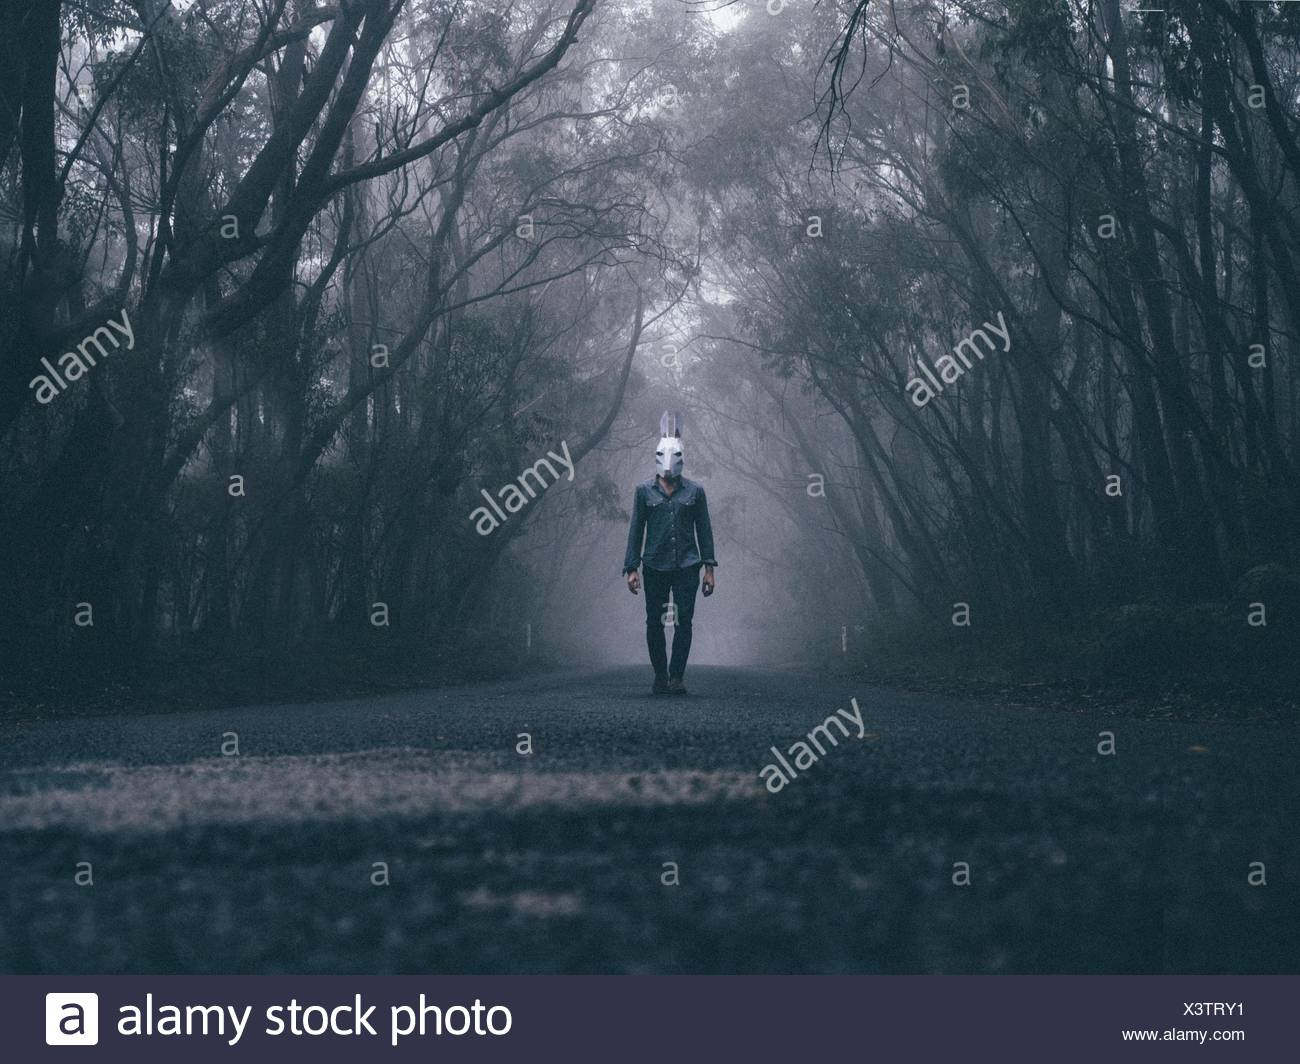 Man Wearing Rabbit Mask On Forest Road - Stock Image